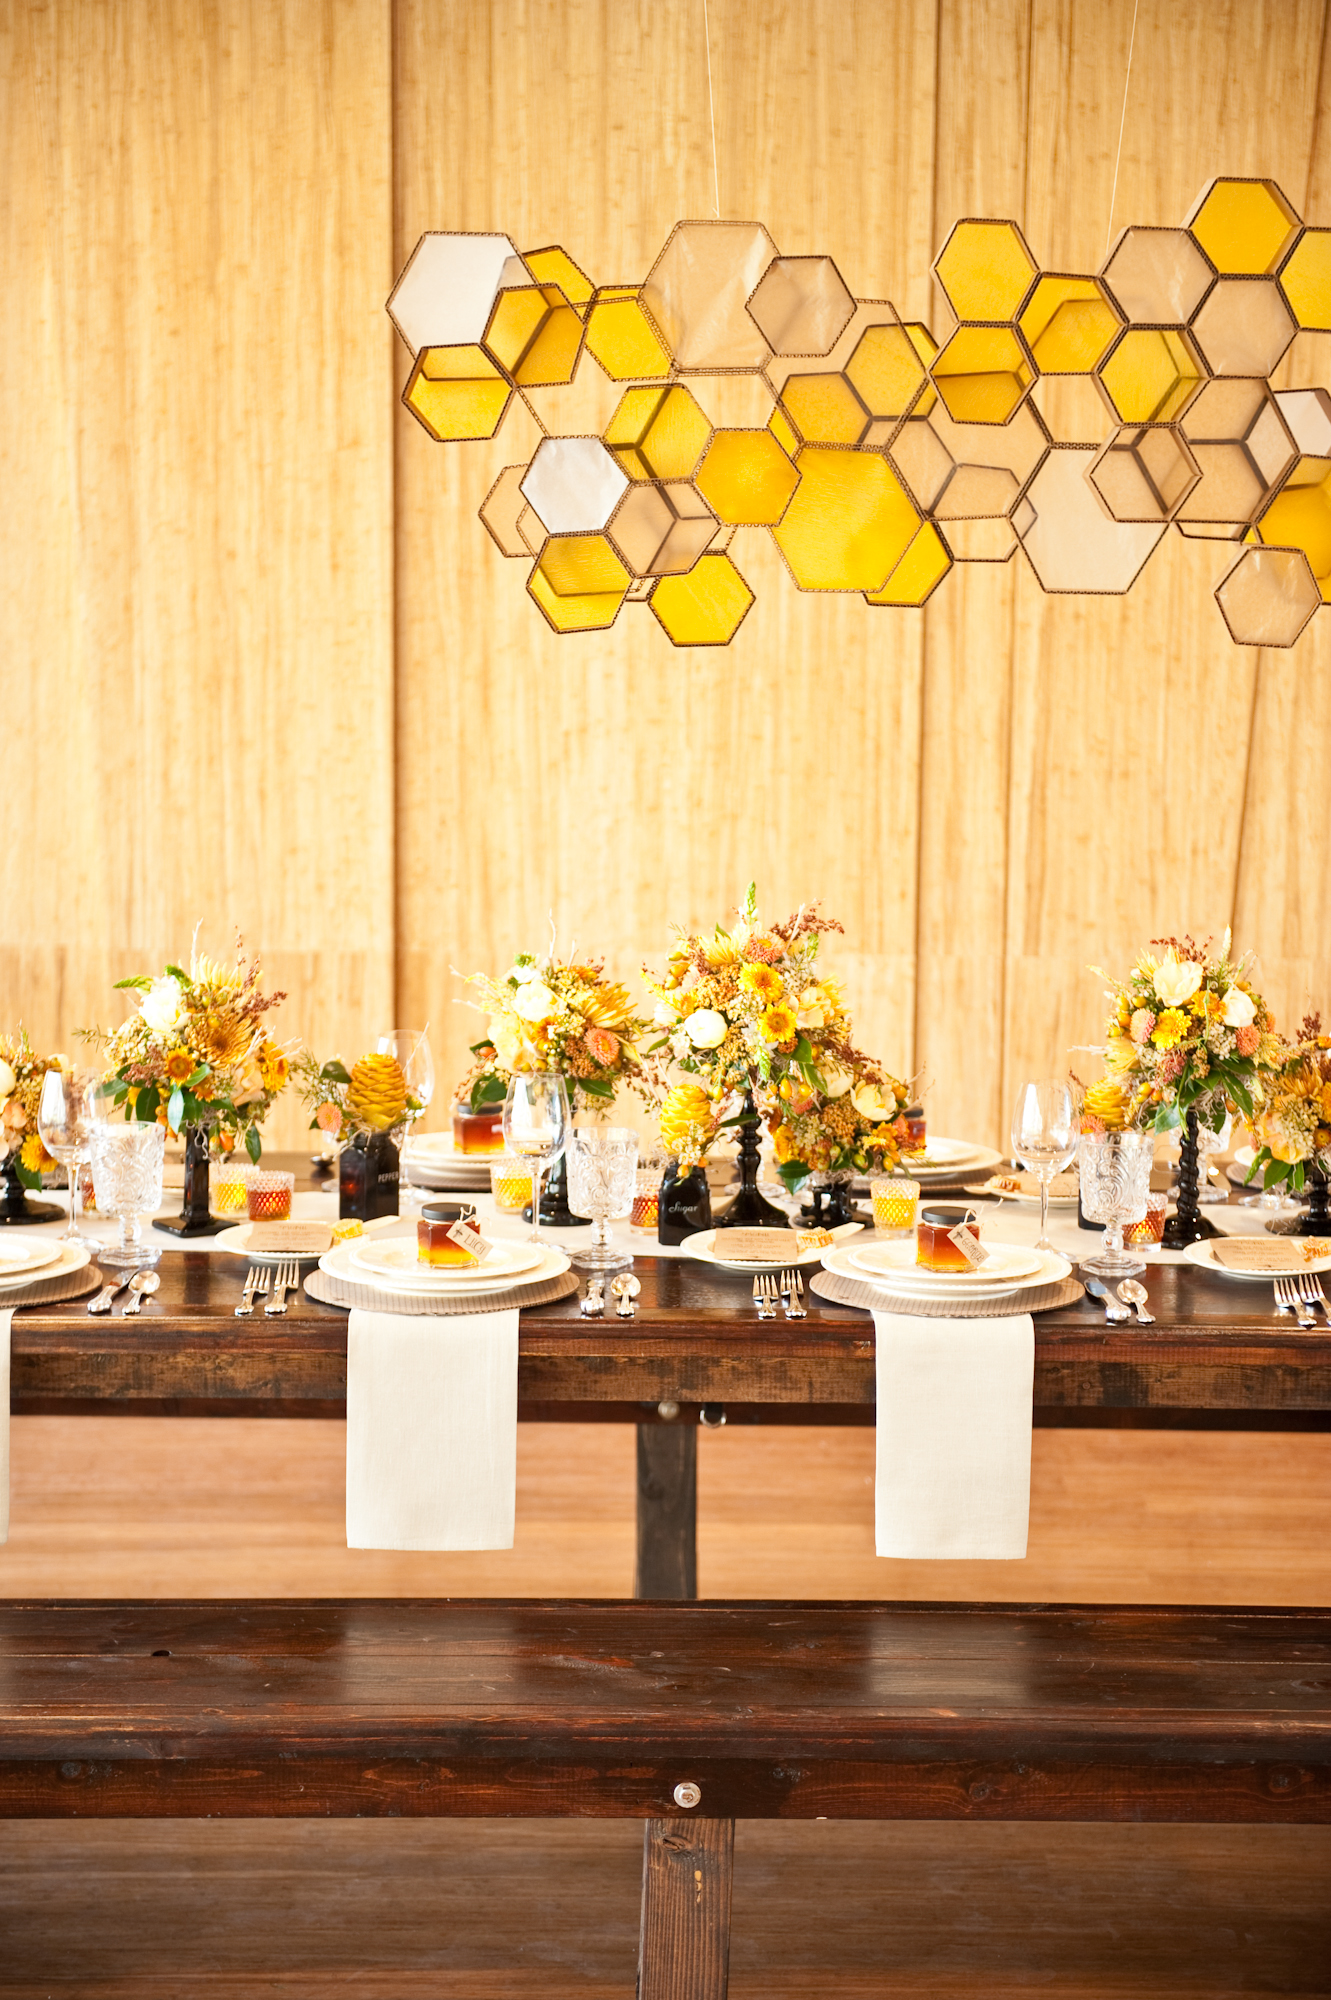 Honeycomb Wedding Inspiration, Hanging Honeycomb Light Installation